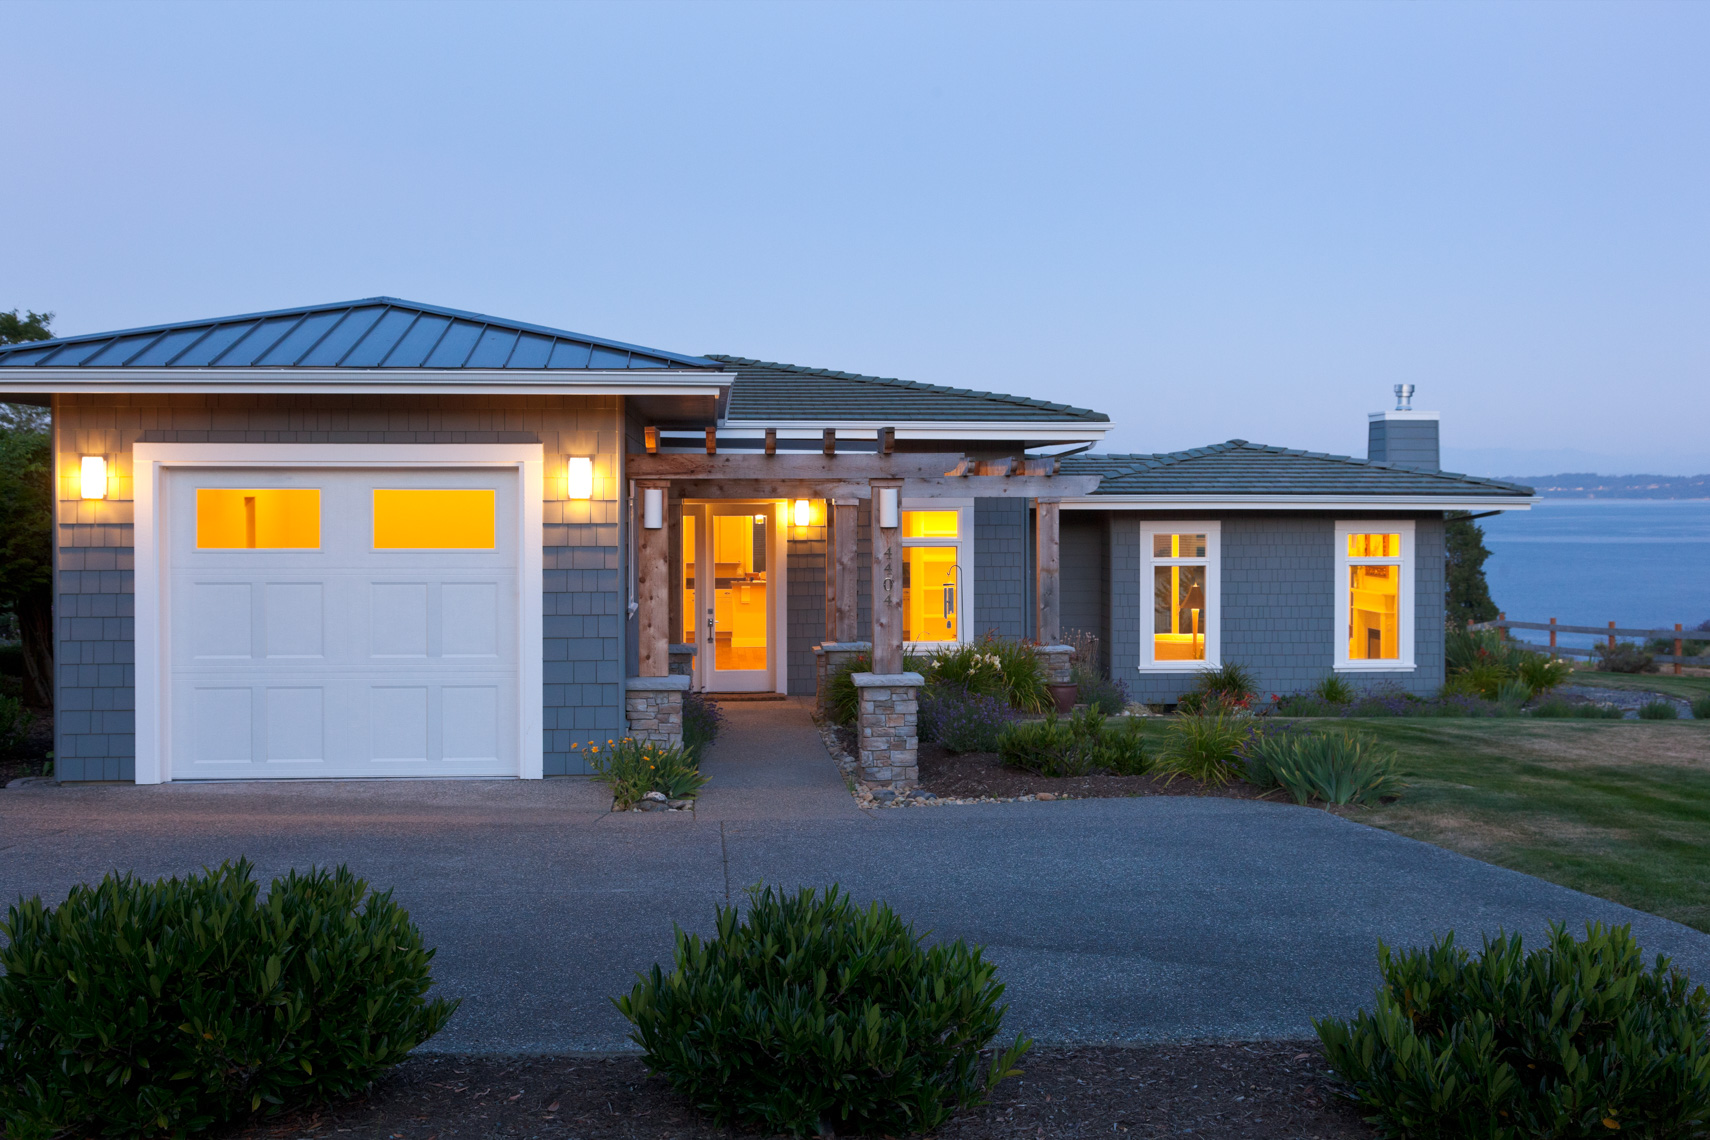 Contemporary house and garage at dusk with exterior lighting and lights on inside. Home energy use, water view real estate.